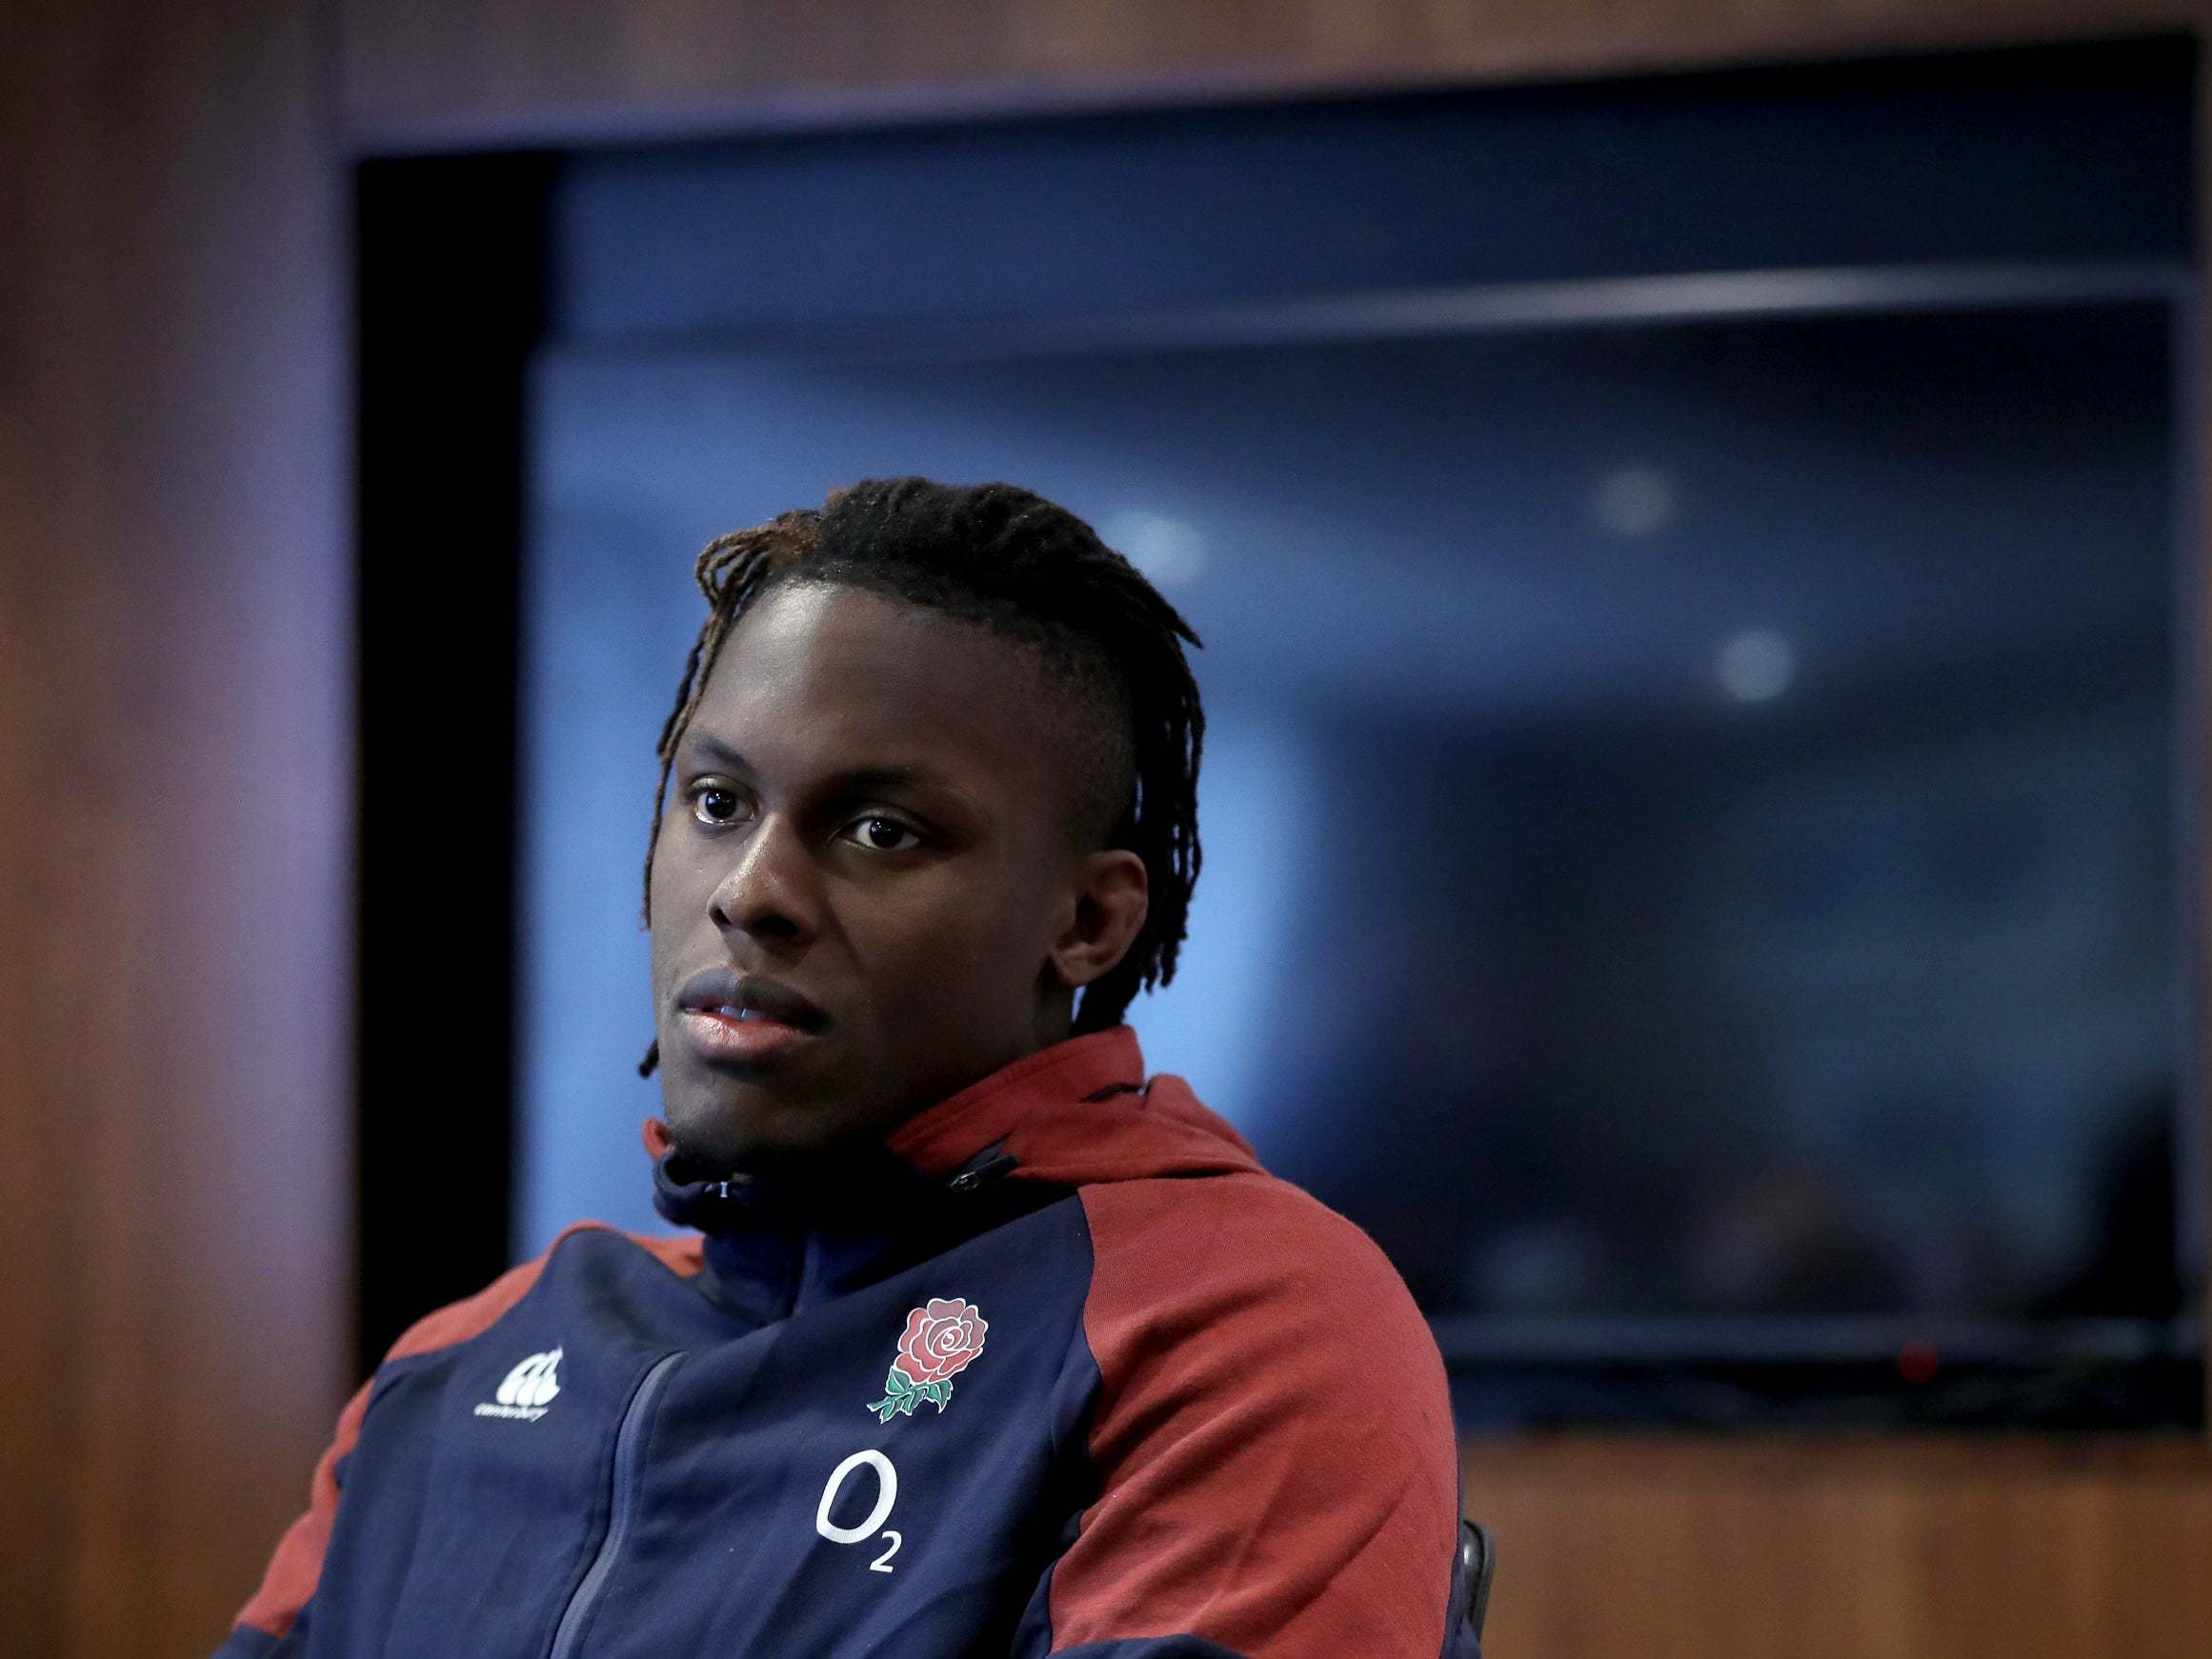 Maro Itoje against making salaries public after 'invasion of privacy'